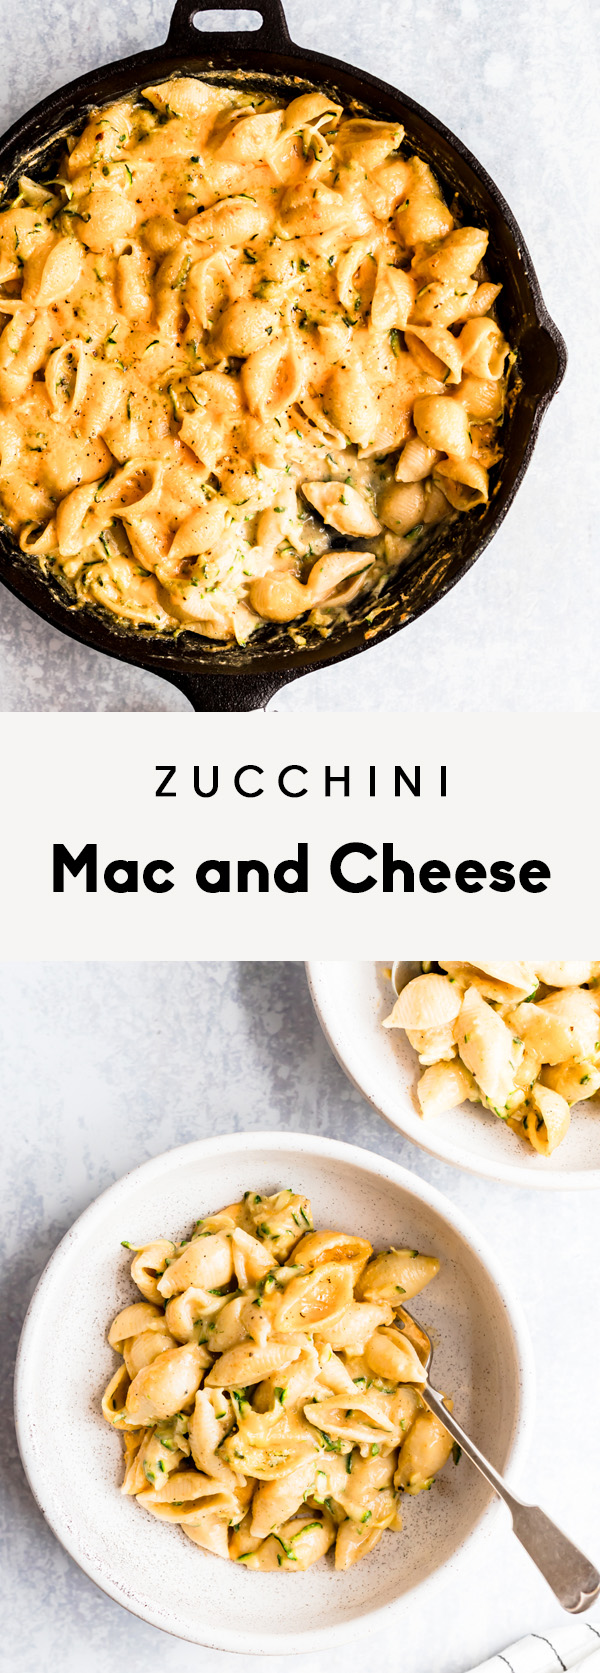 collage of zucchini mac and cheese in a skillet and in two bowls